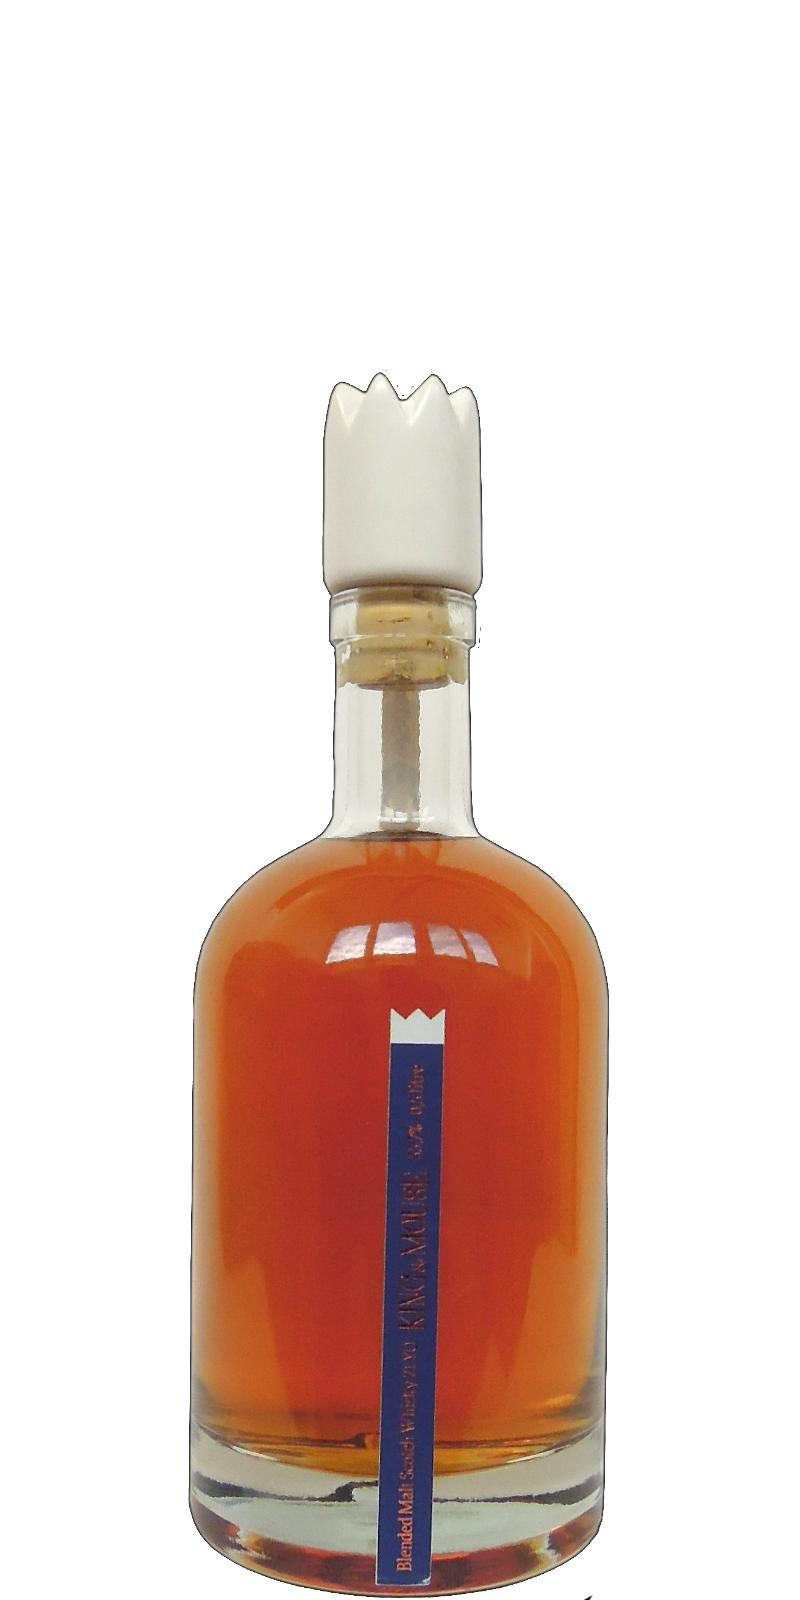 Blended Malt Scotch Whisky King&Mouse 21-year-old